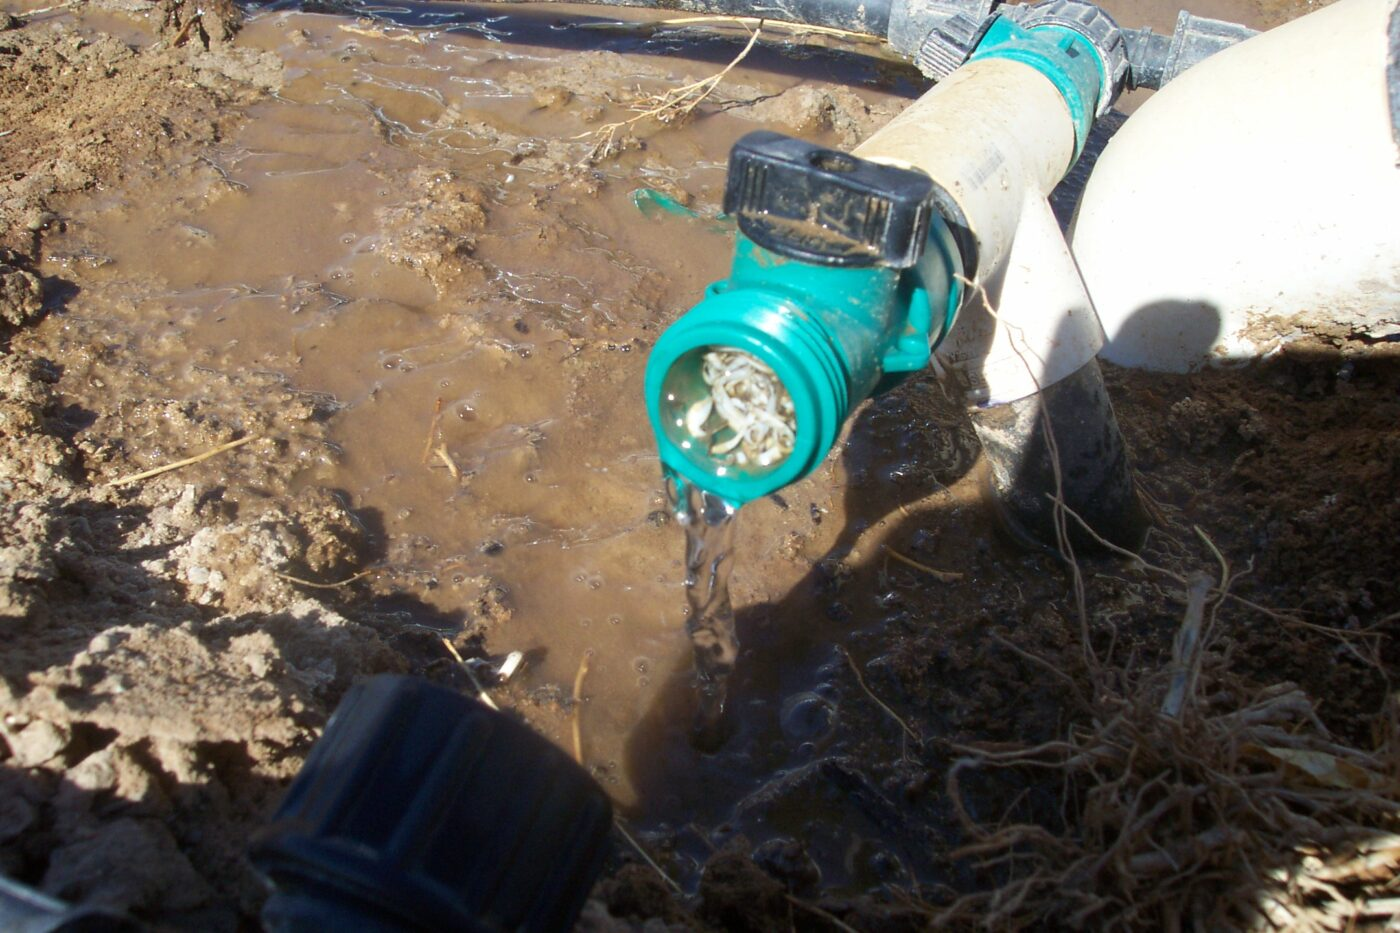 Irrigation manifold riser with plastic shavings causing pressure reduction to drip hose